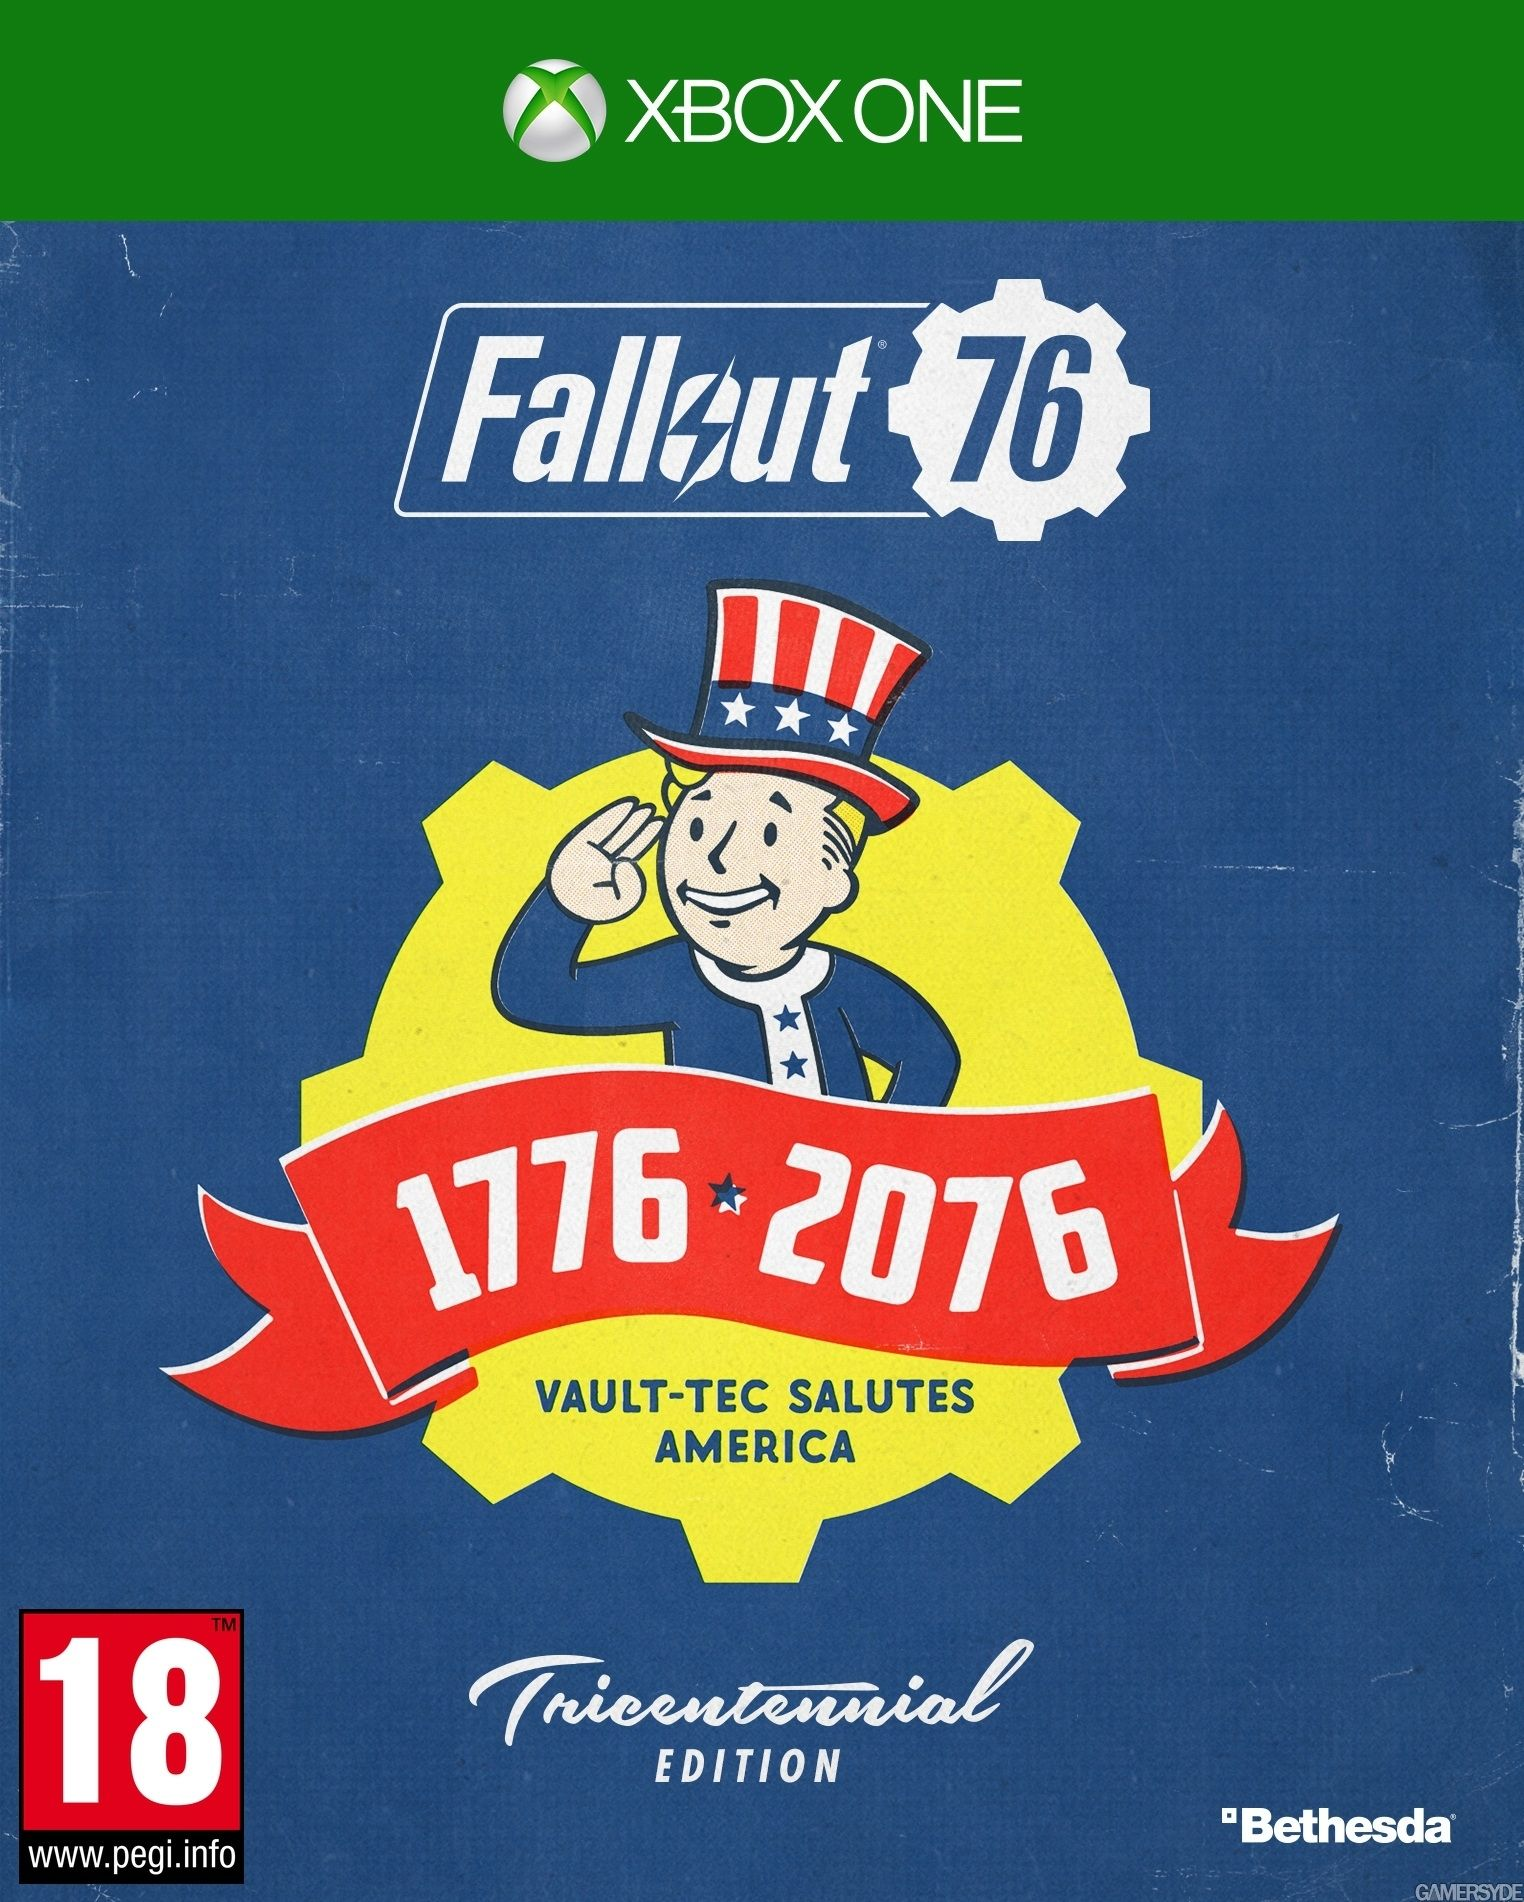 Fallout 76 Tricentennial Edition (Xbox One) - 1